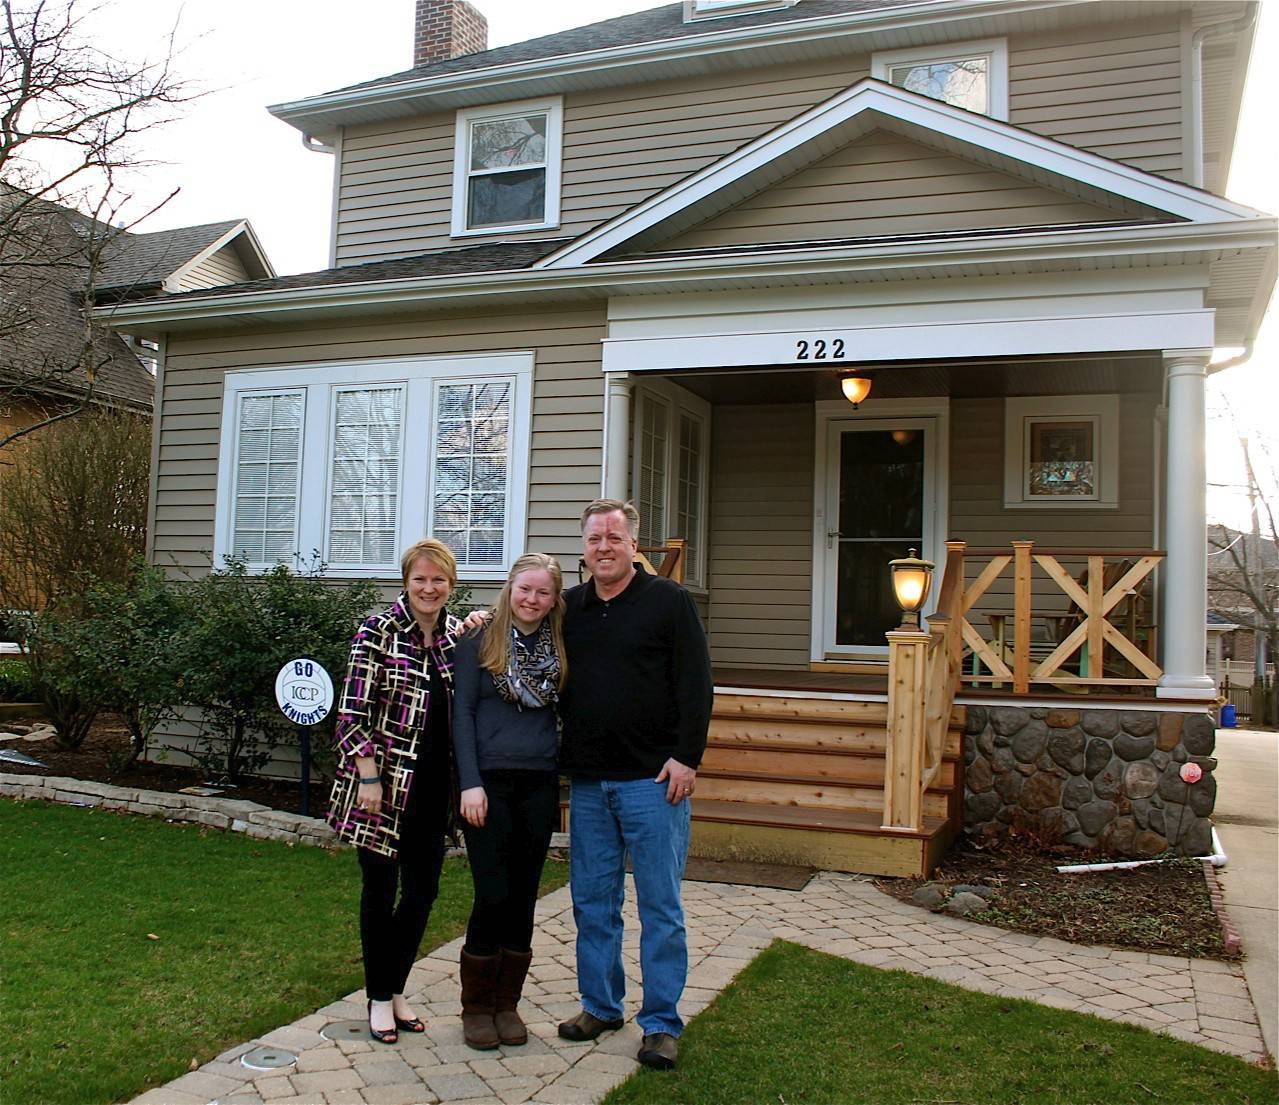 Amy and Tom Fahey, shown in front of their Elmhurst home with daughter Molly, have made plans to build a second house they can enjoy before retirement.